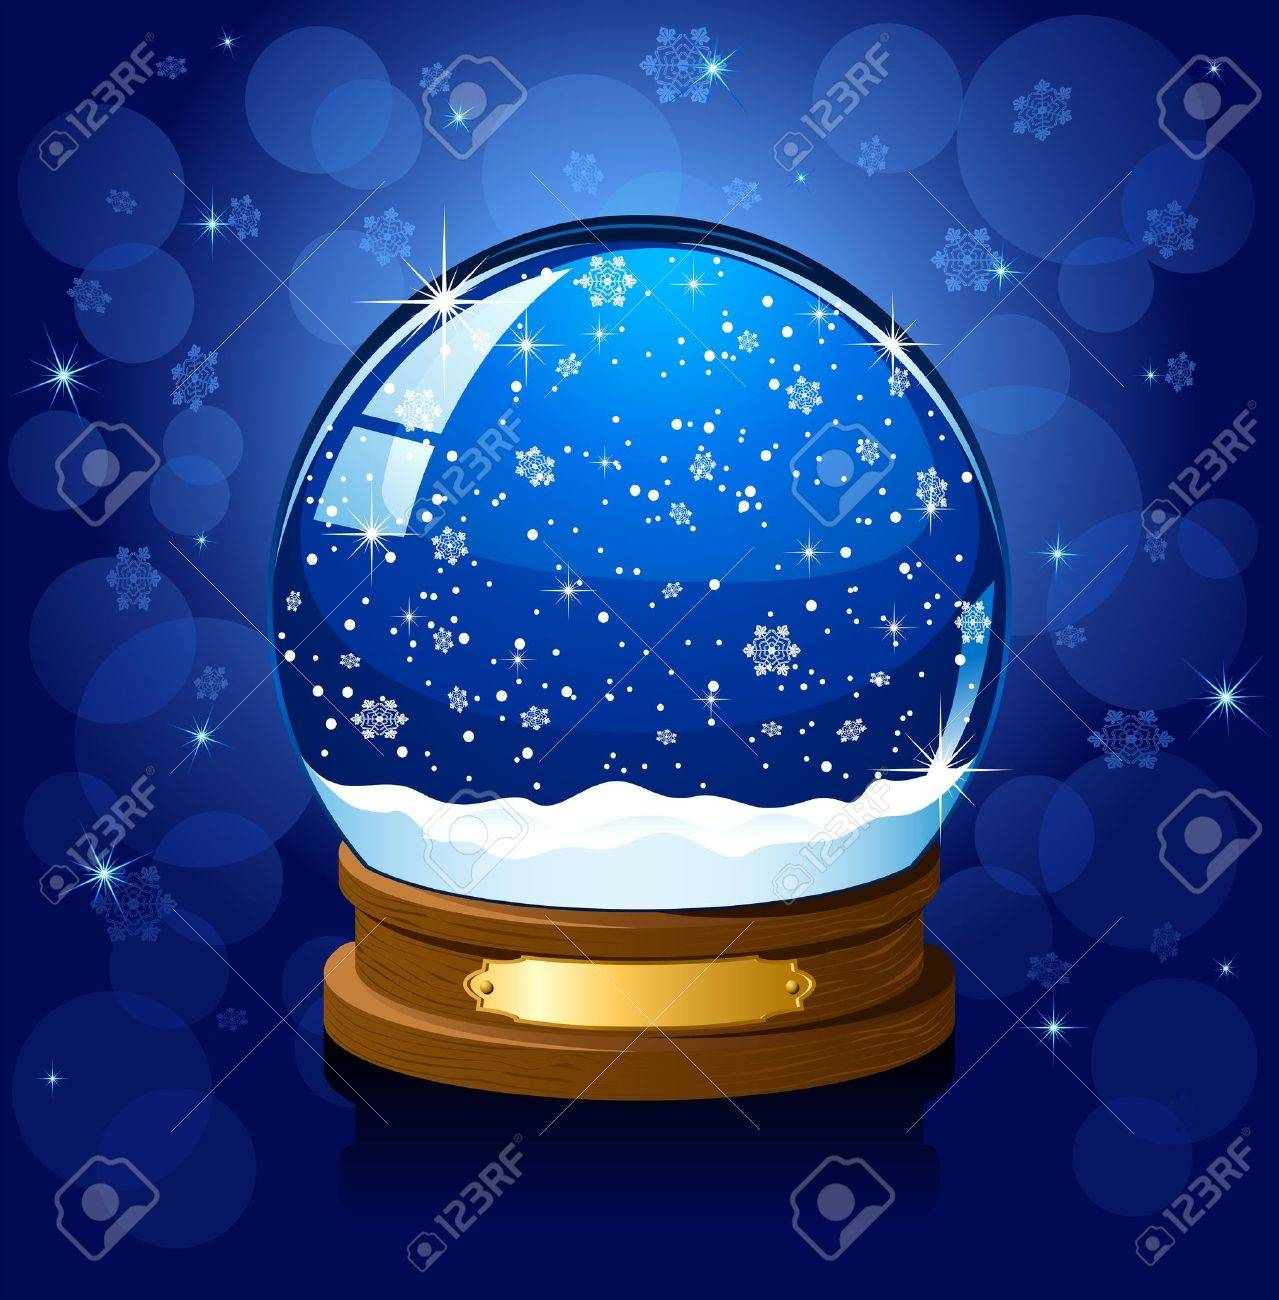 Christmas Snow globe with the falling snow, illustration Stock Vector - 11373350